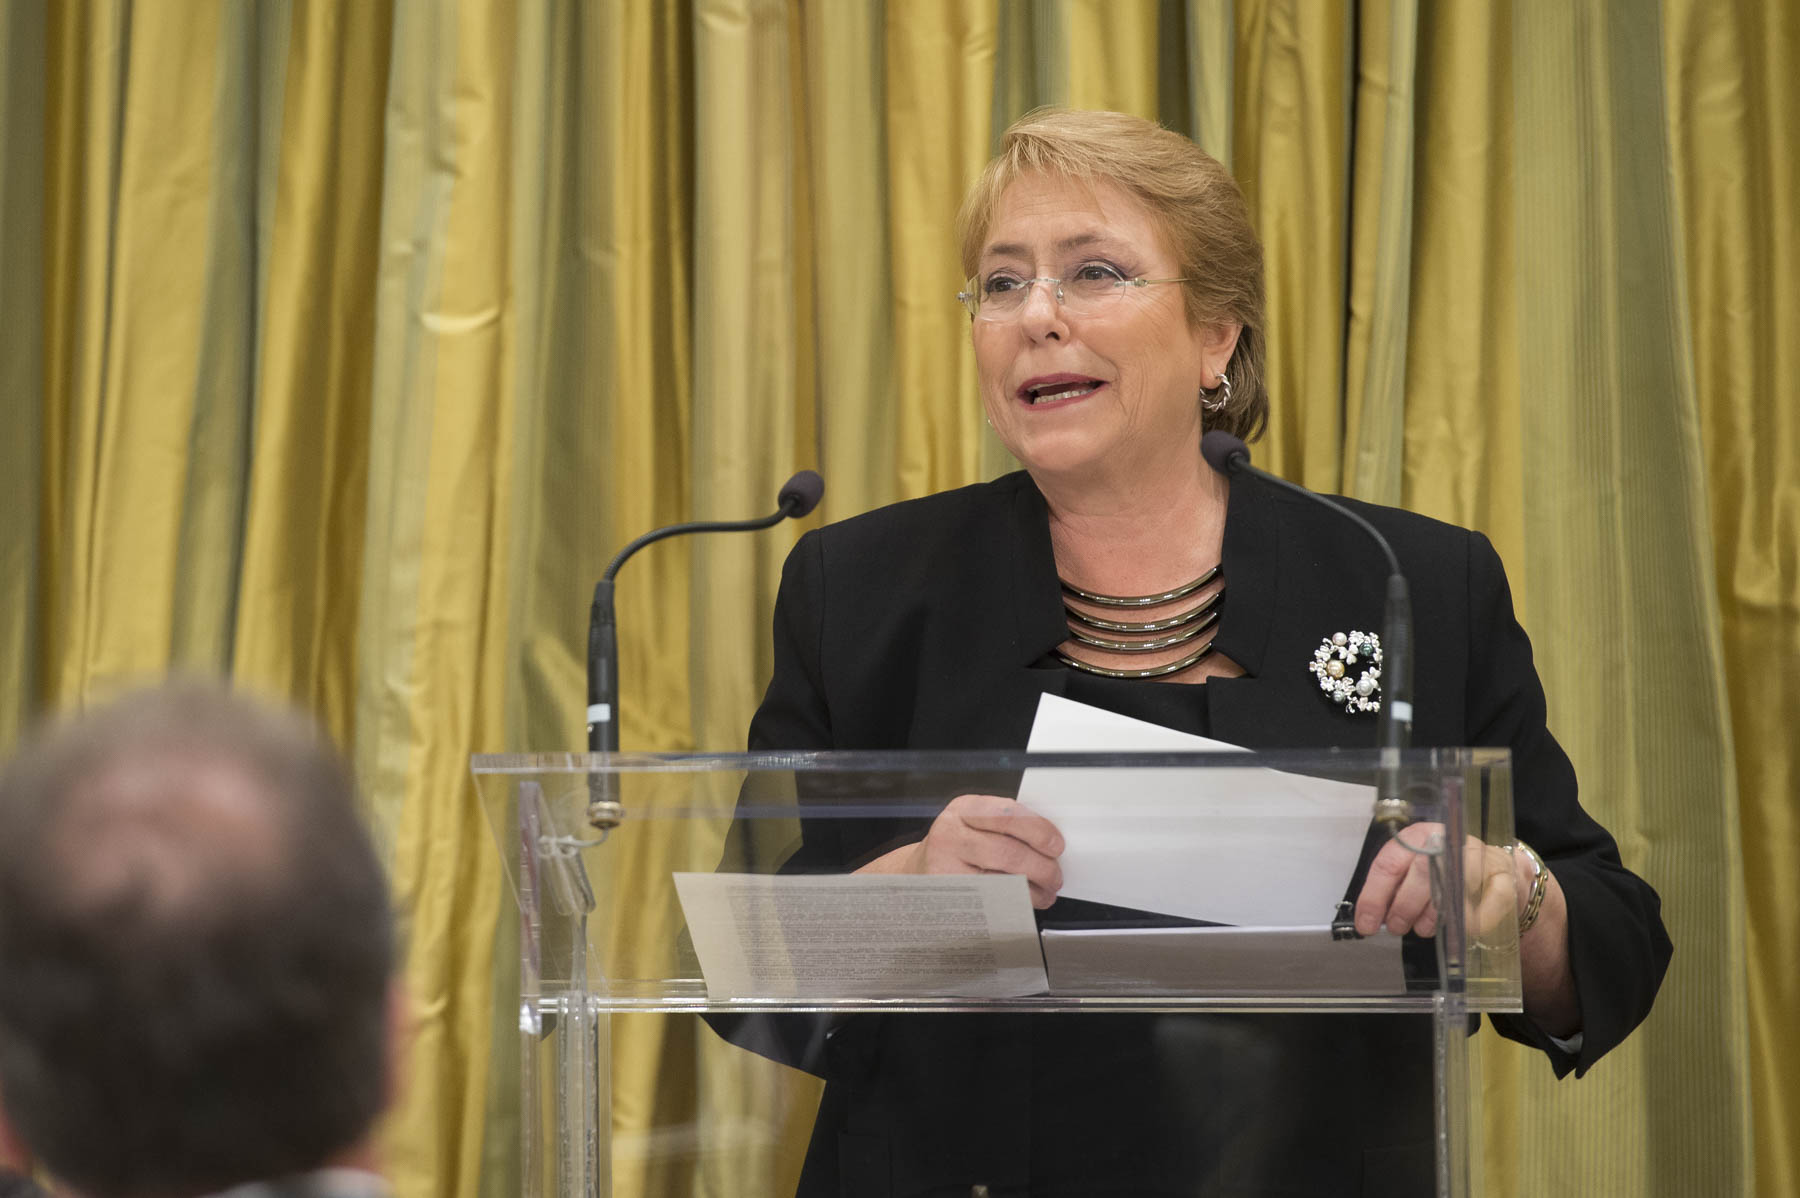 President Bachelet also said a few words.